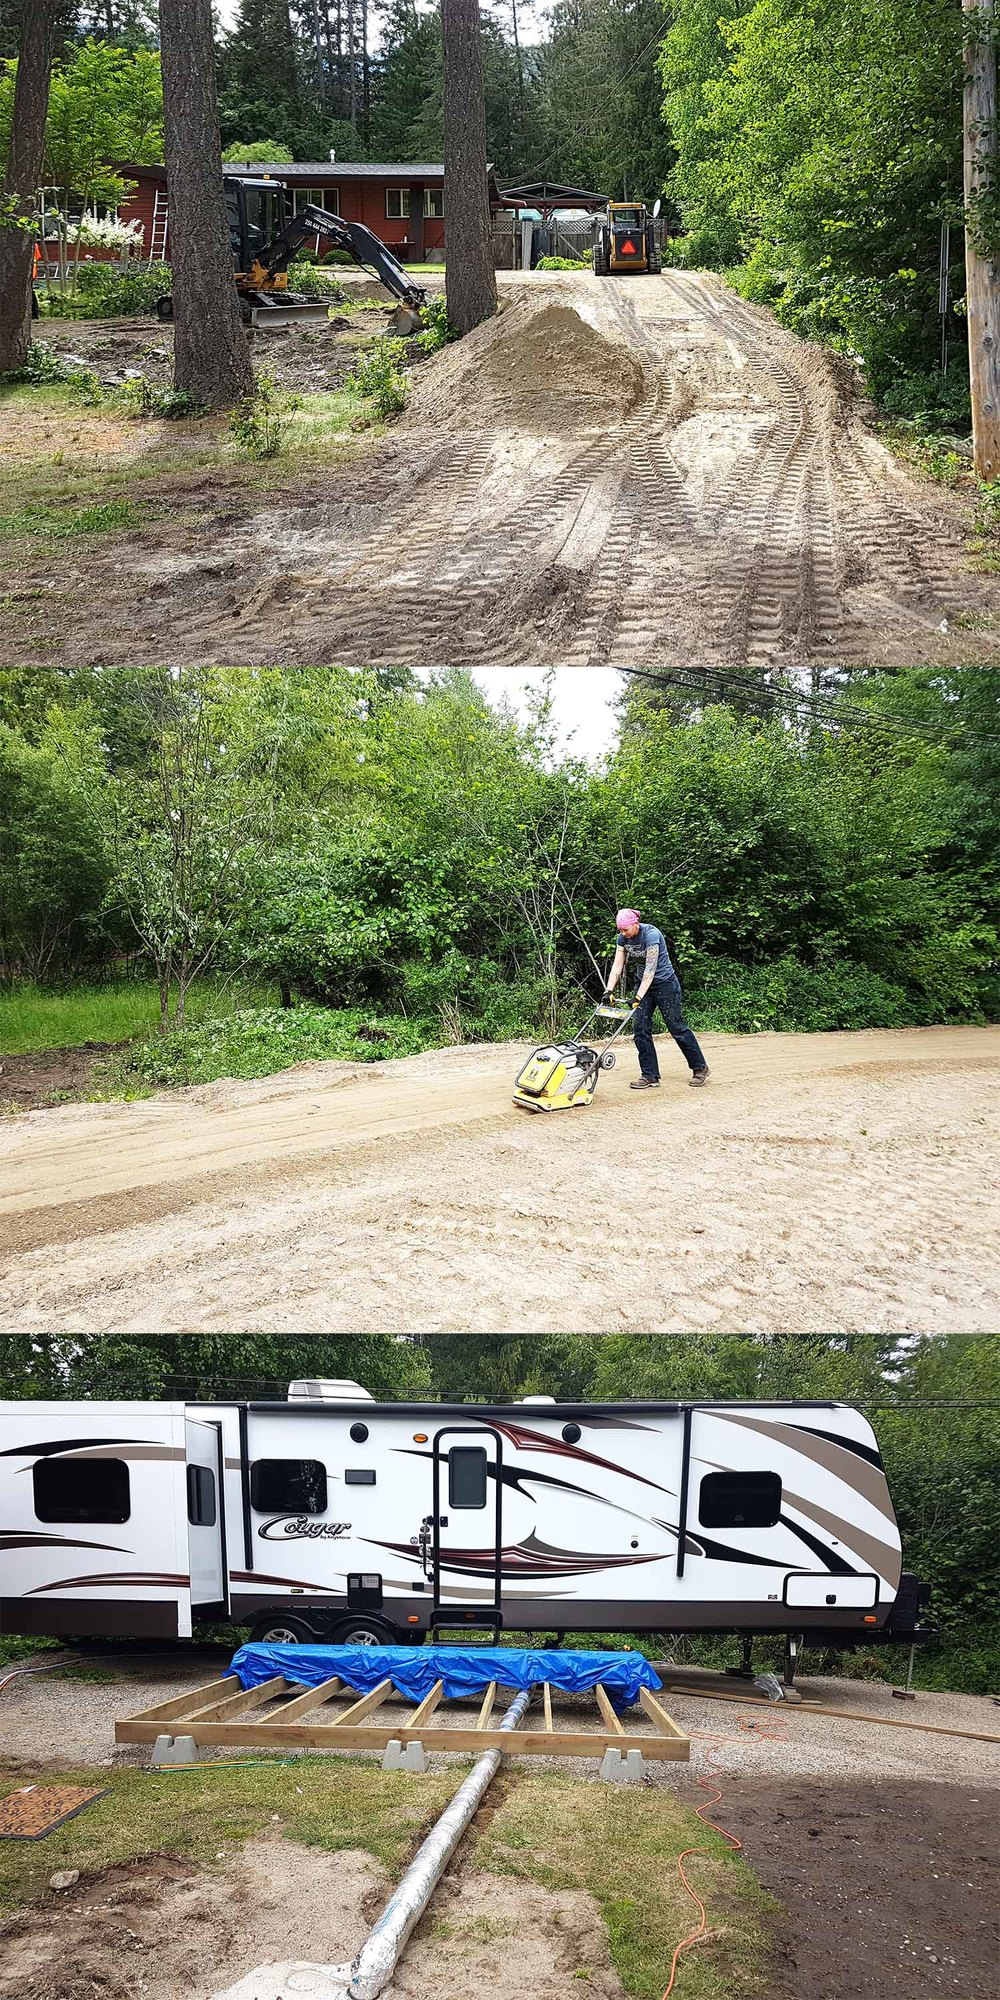 The reality of setting up...we just couldn't pull in and park! My parents agreed to some land-formatting, which now looks amazing! Top: Starting to create space. Middle: Angel packing the gravel. Bottom: Getting the hook-ups working.